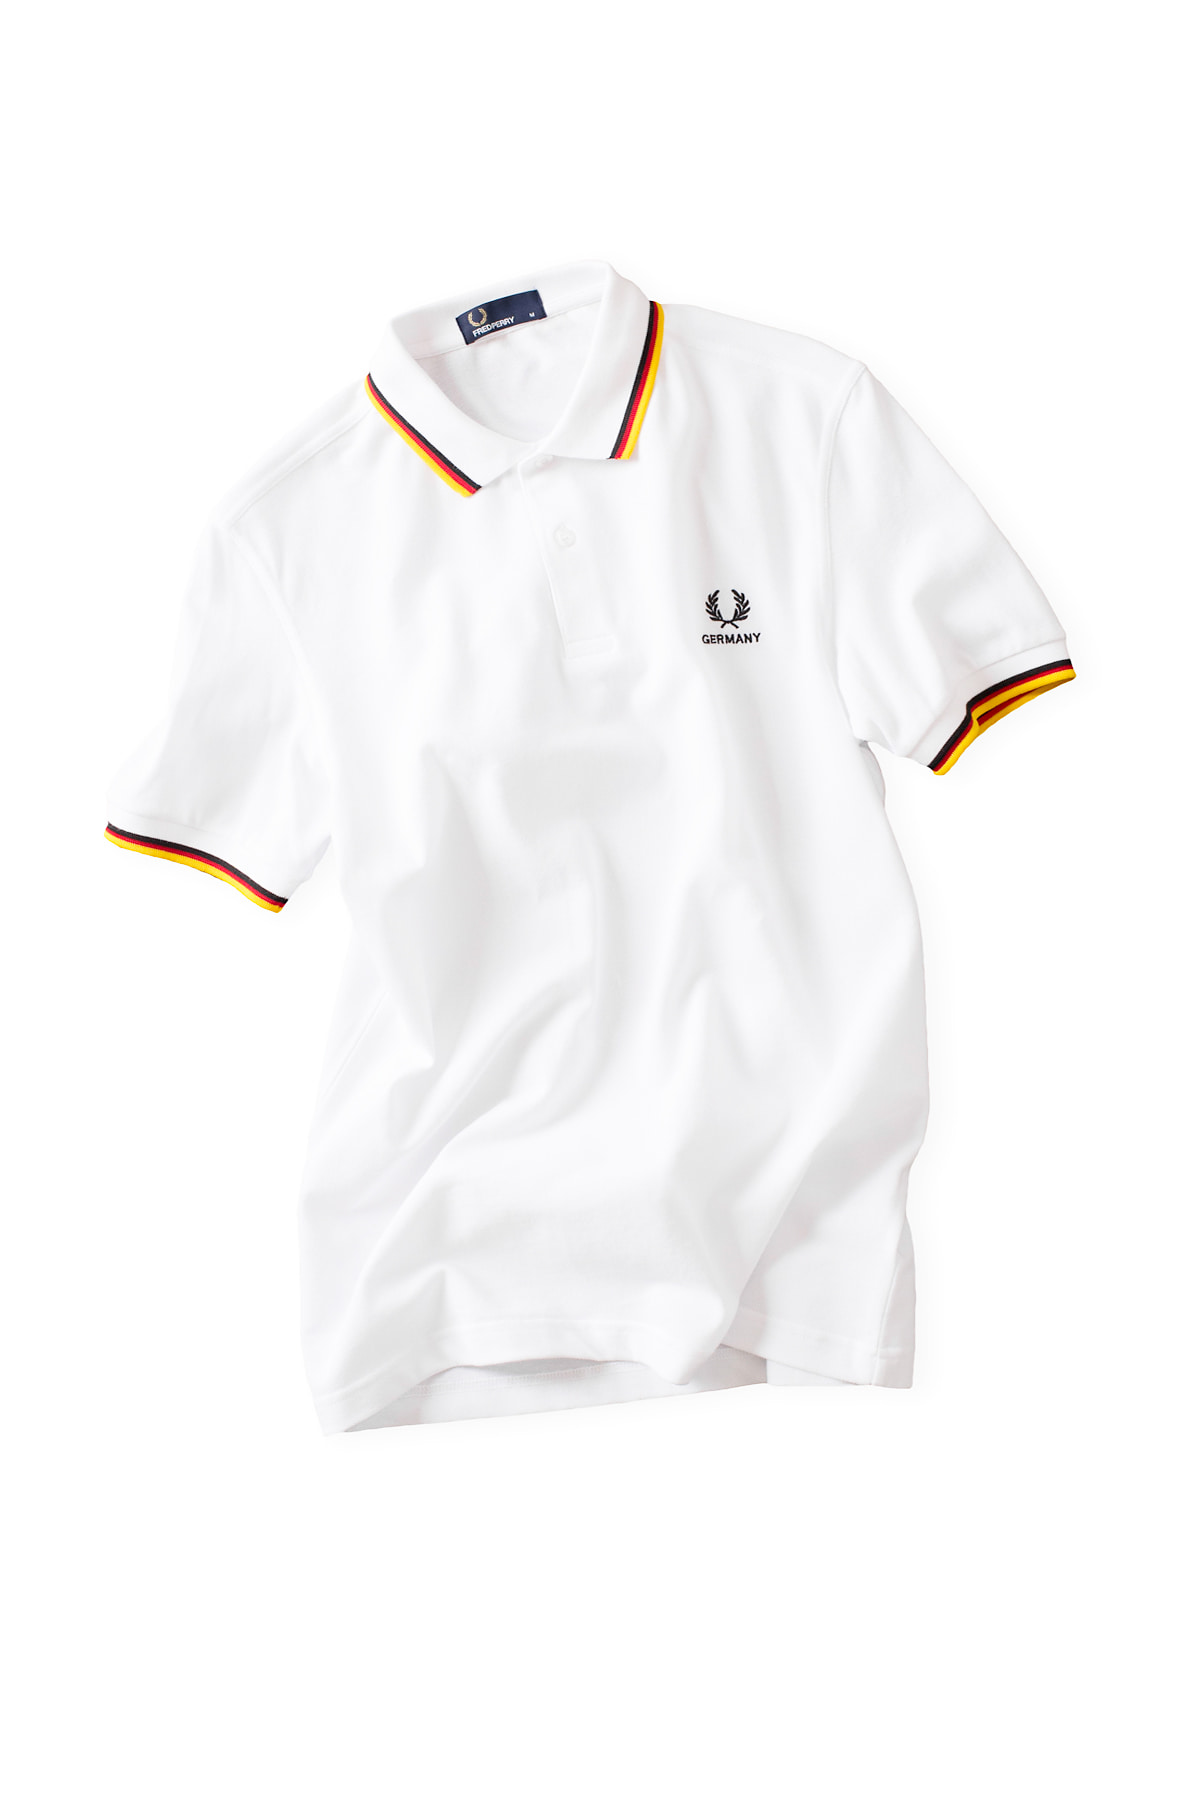 FRED PERRY : The Country Shirt GERMANY (White)